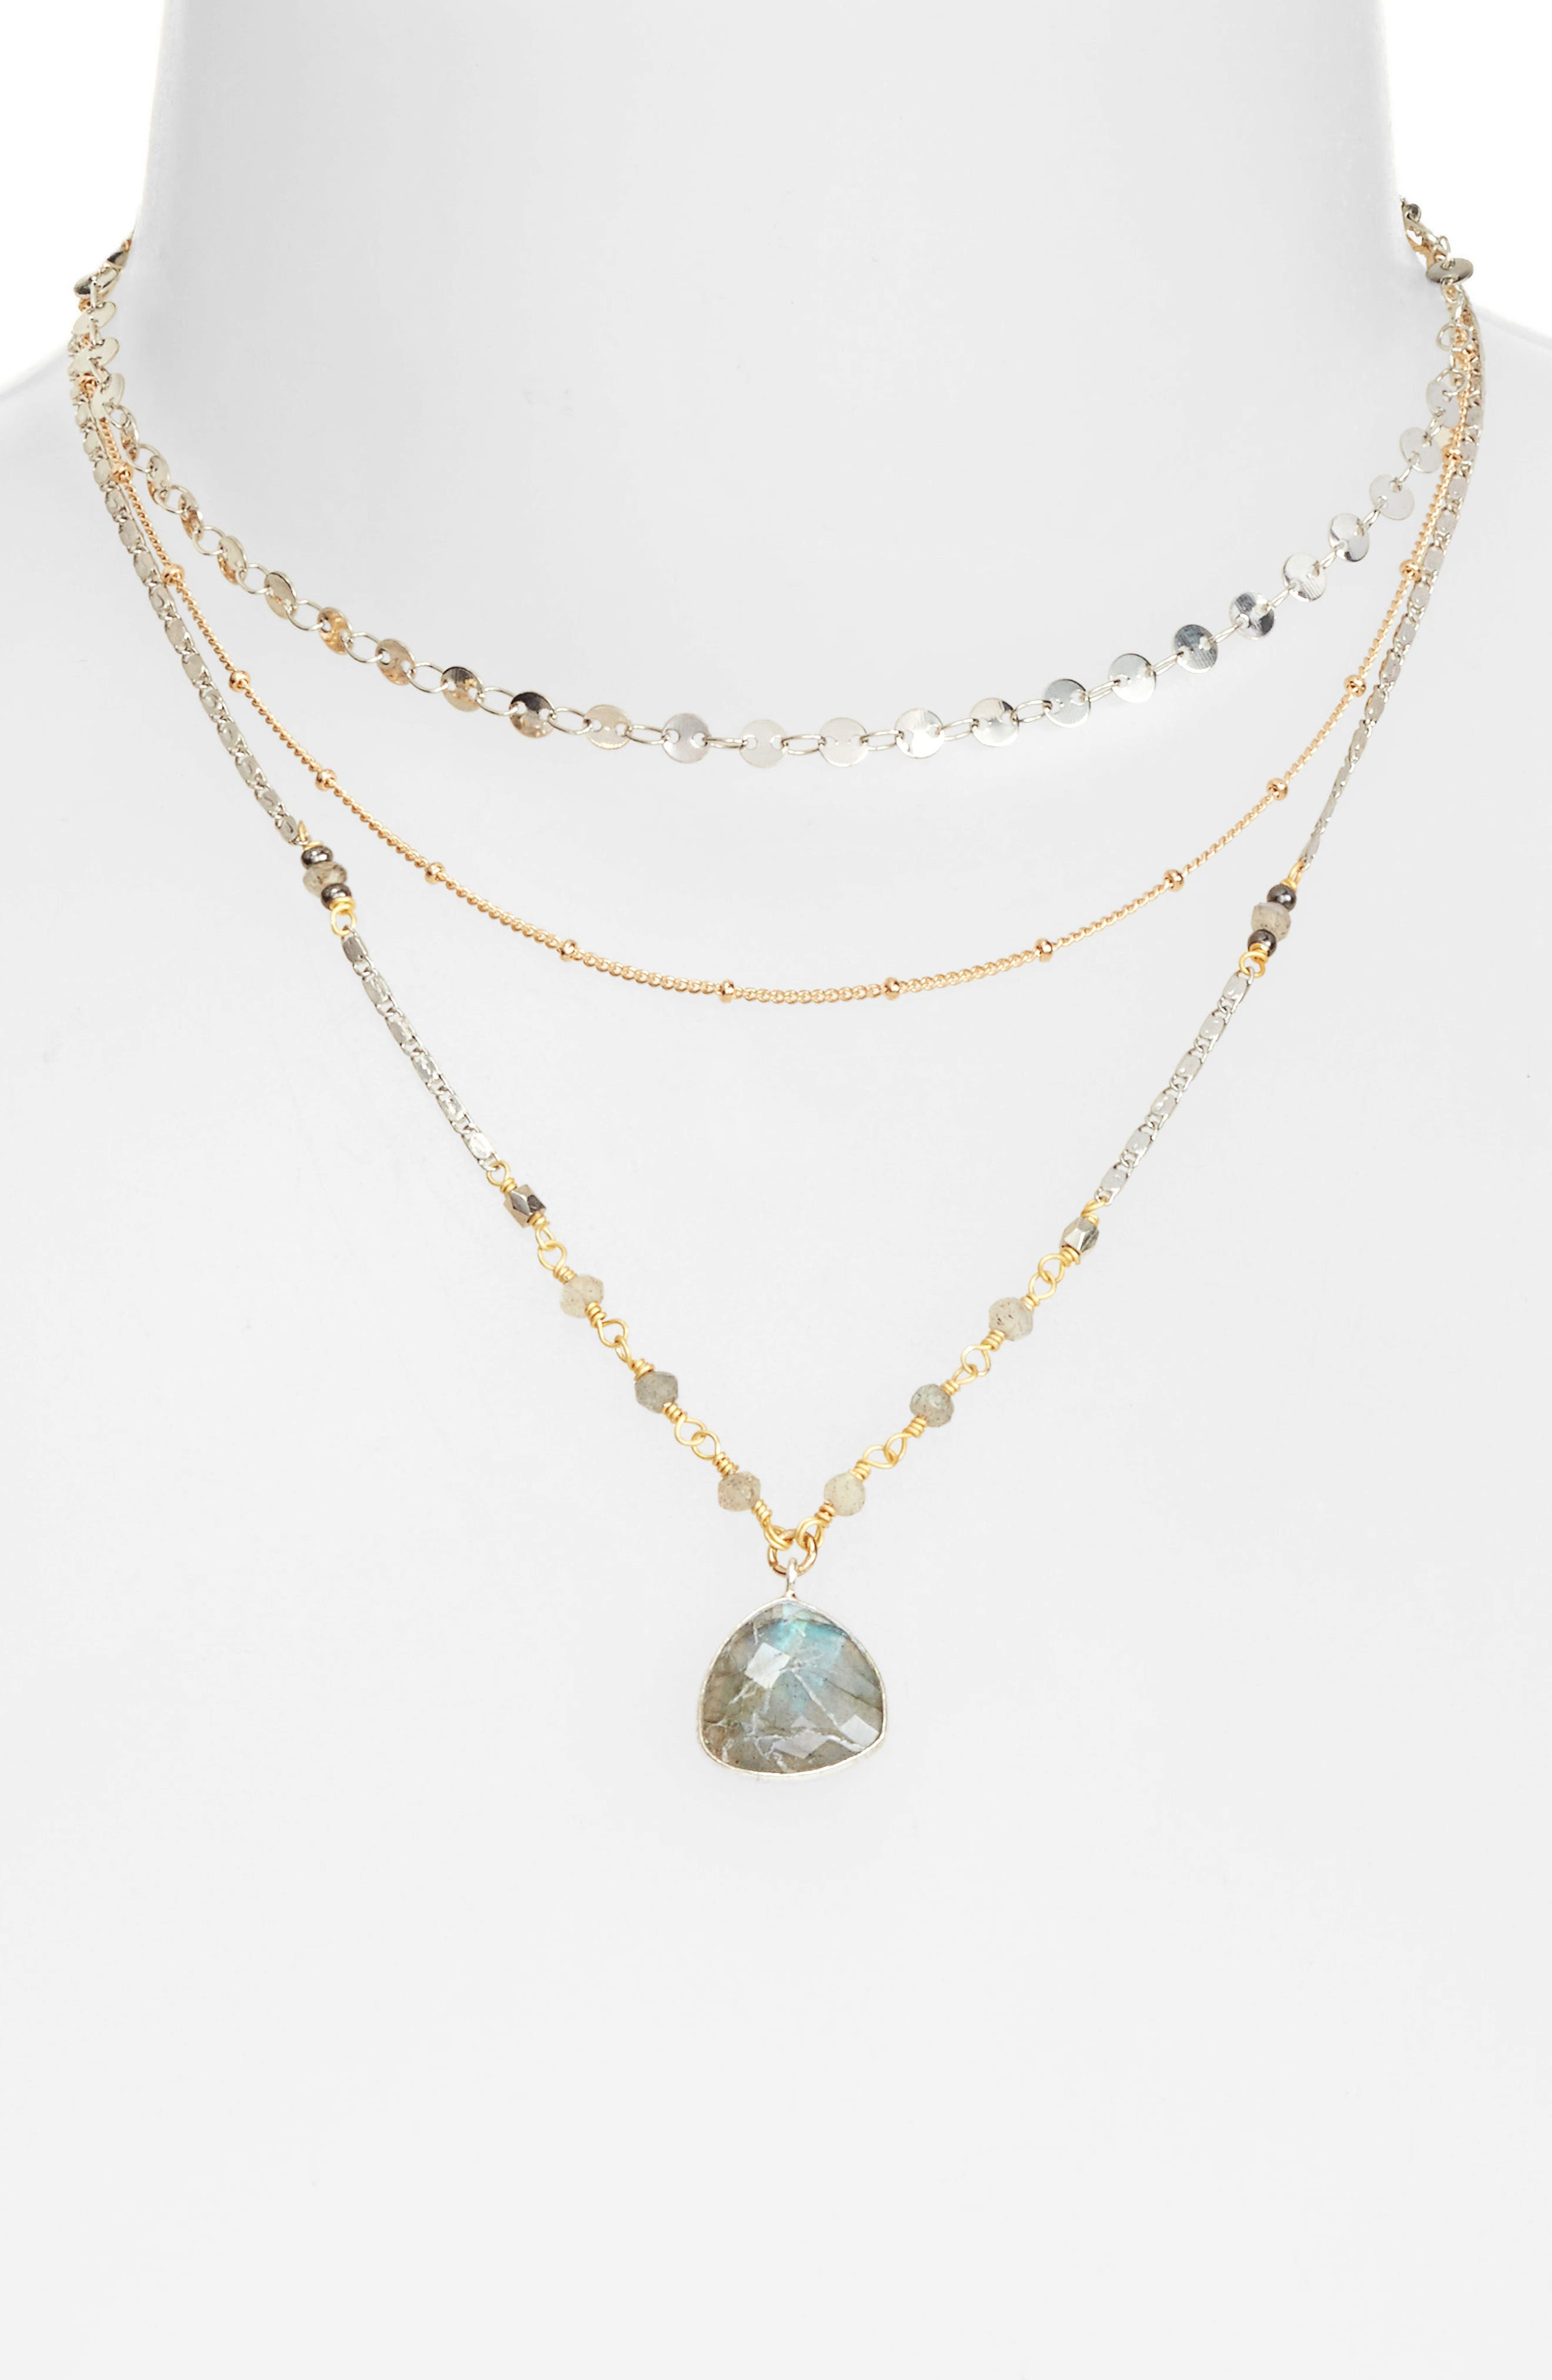 Multistrand Necklace,                             Alternate thumbnail 2, color,                             020